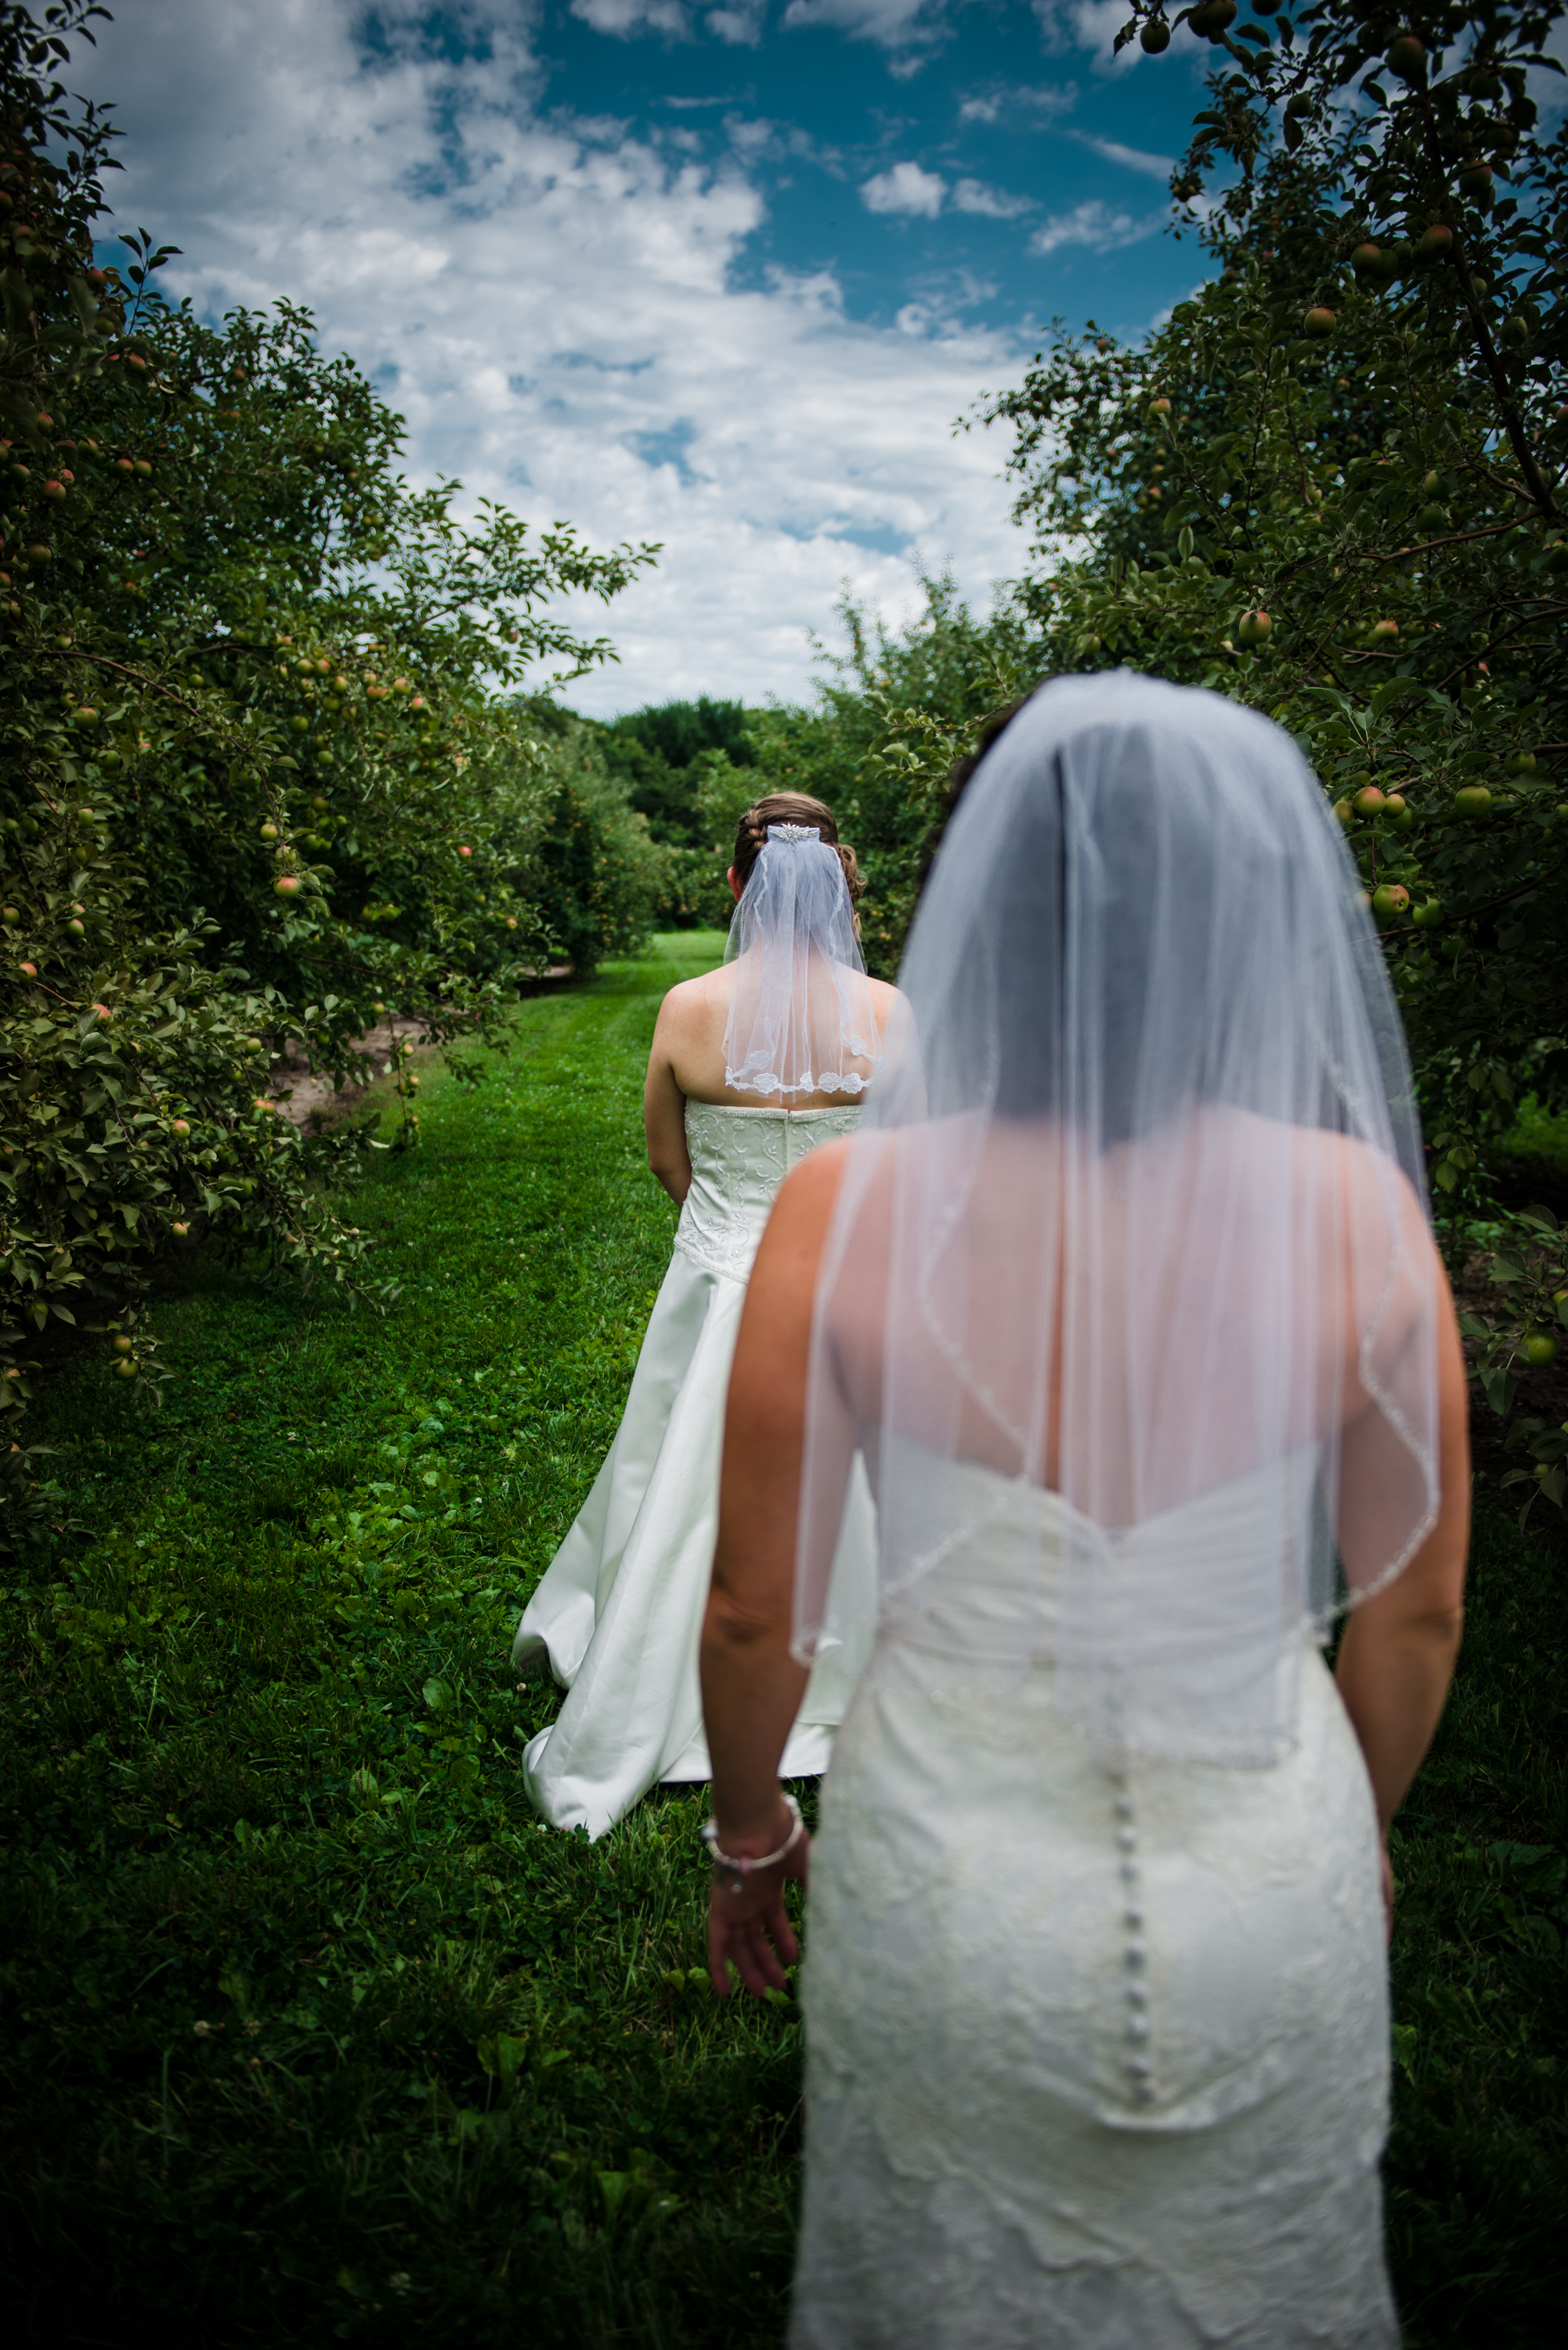 Minnesota LGBT Wedding Photography - Megan and Trista - RKH Images - First Look (17 of 60).jpg